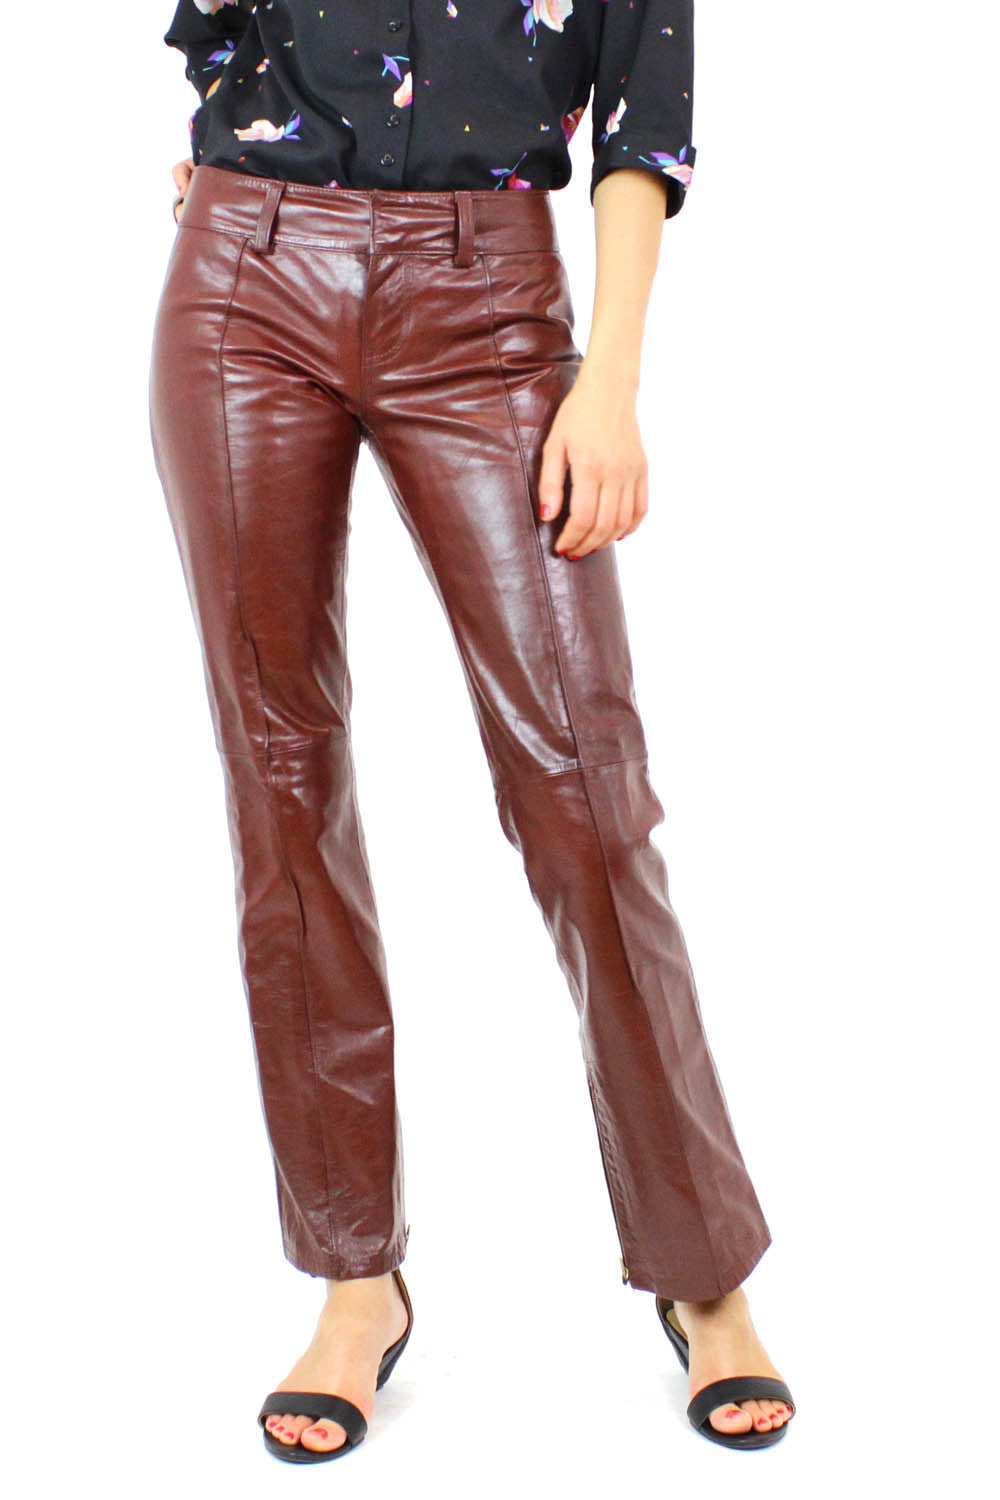 Burgundy leather jeans 2